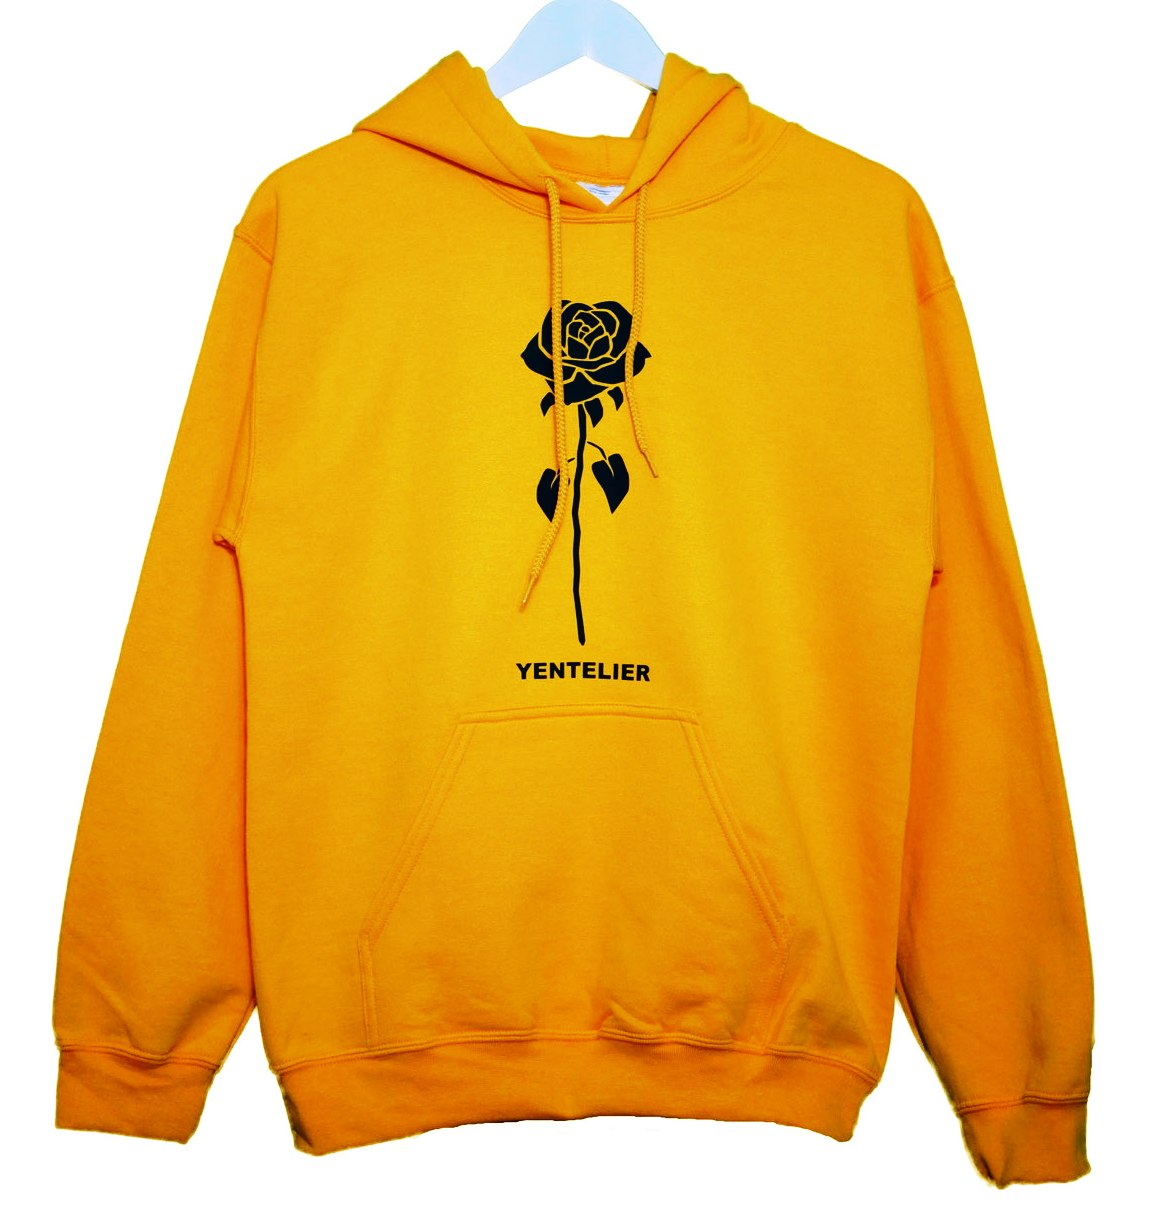 Shop for Yellow hoodies & sweatshirts from Zazzle. Choose a design from our huge selection of images, artwork, & photos.